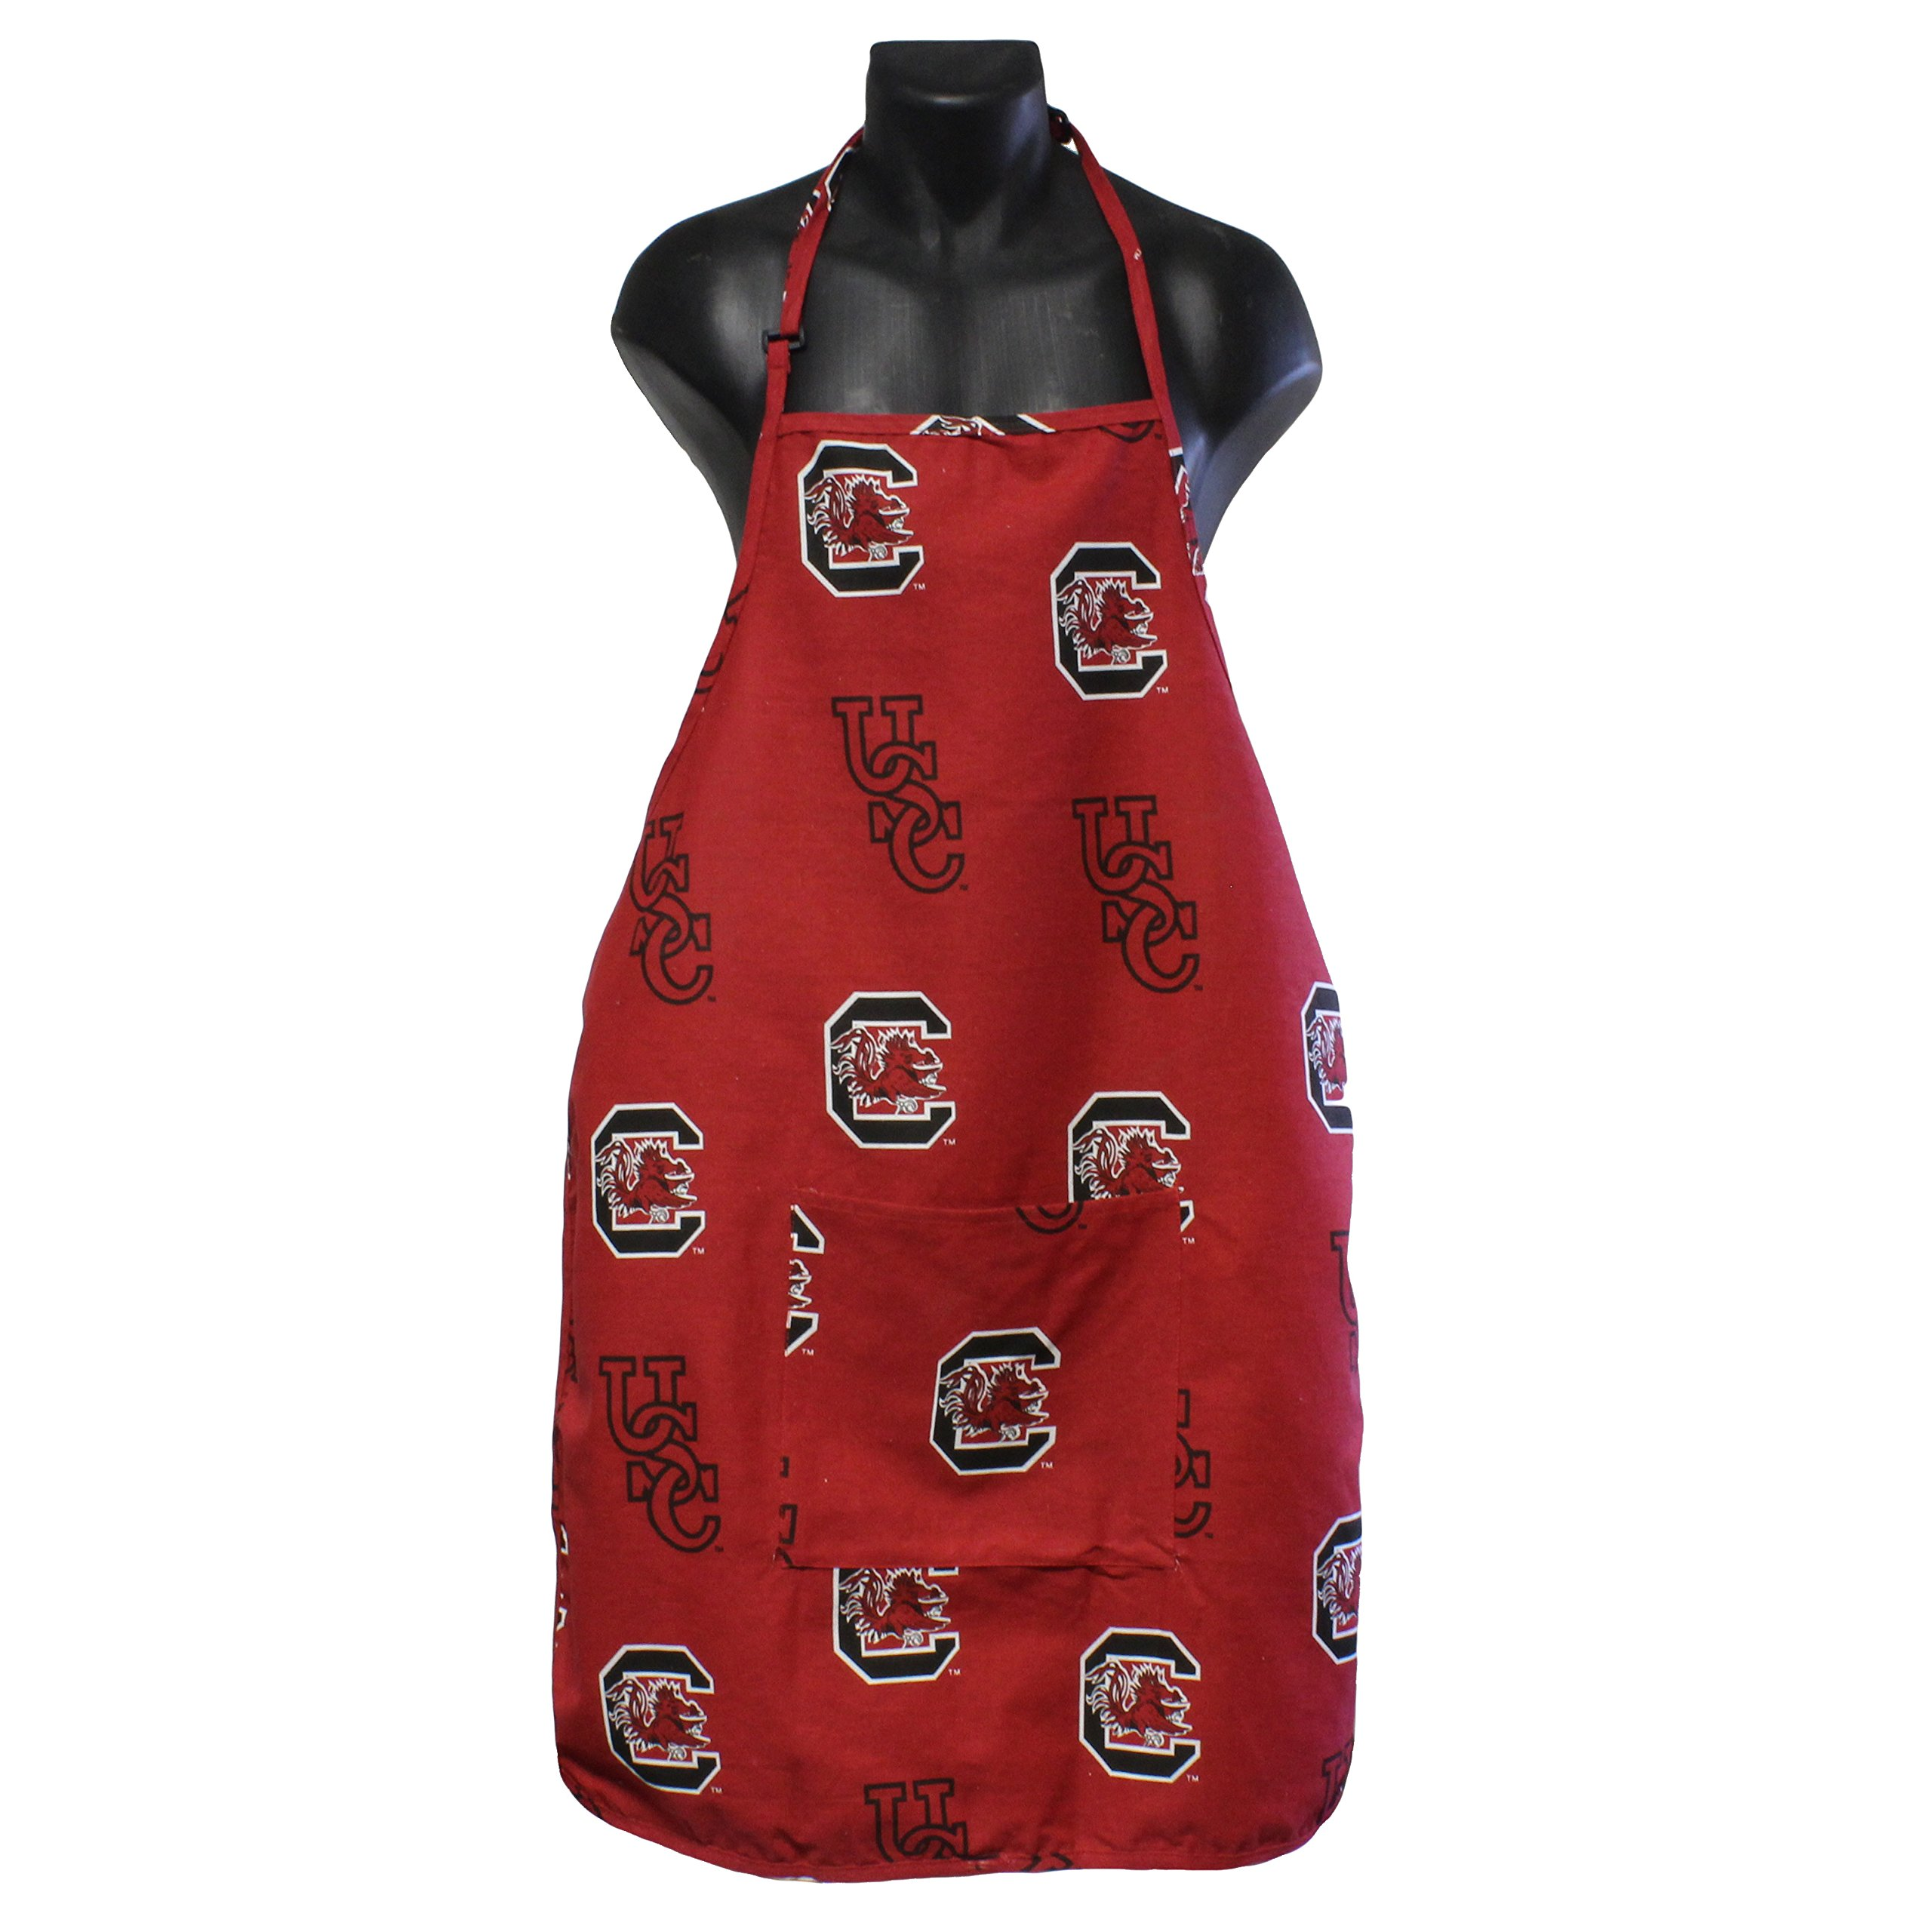 College Covers South Carolina Gamecocks Apron with Pocket